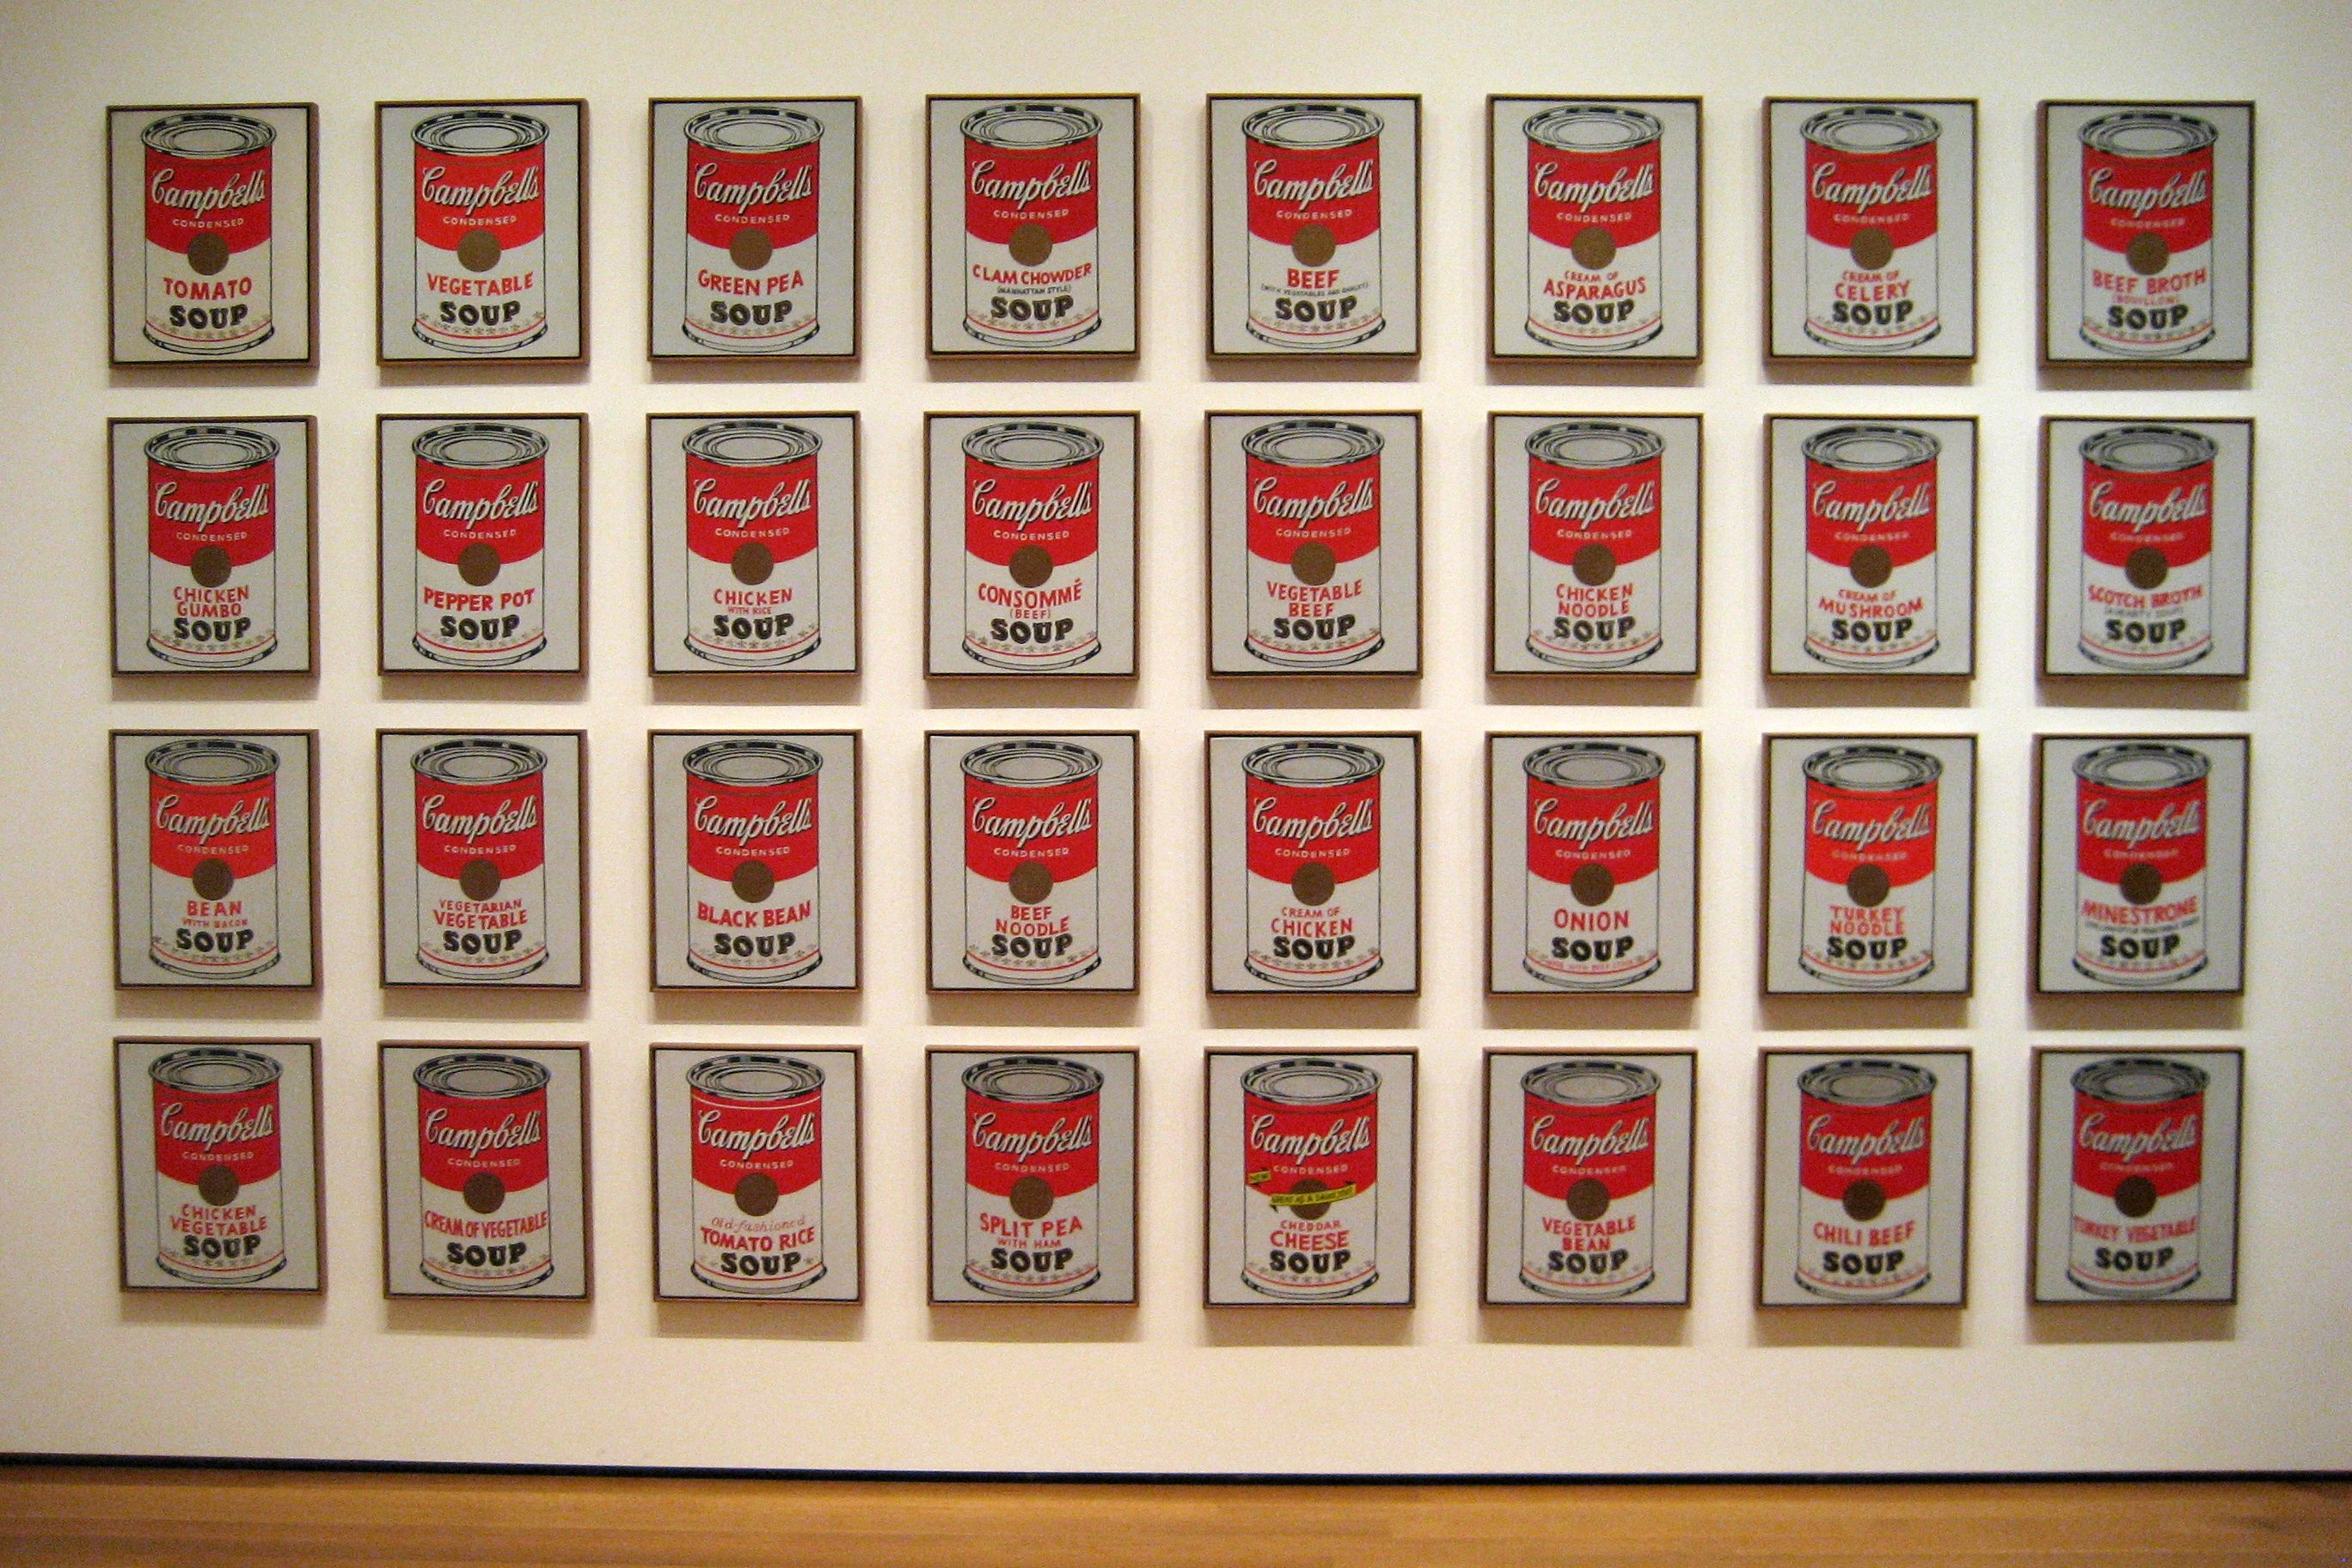 The Art Of Soup Warhol Andy Warhol Campbell S Soup Cans